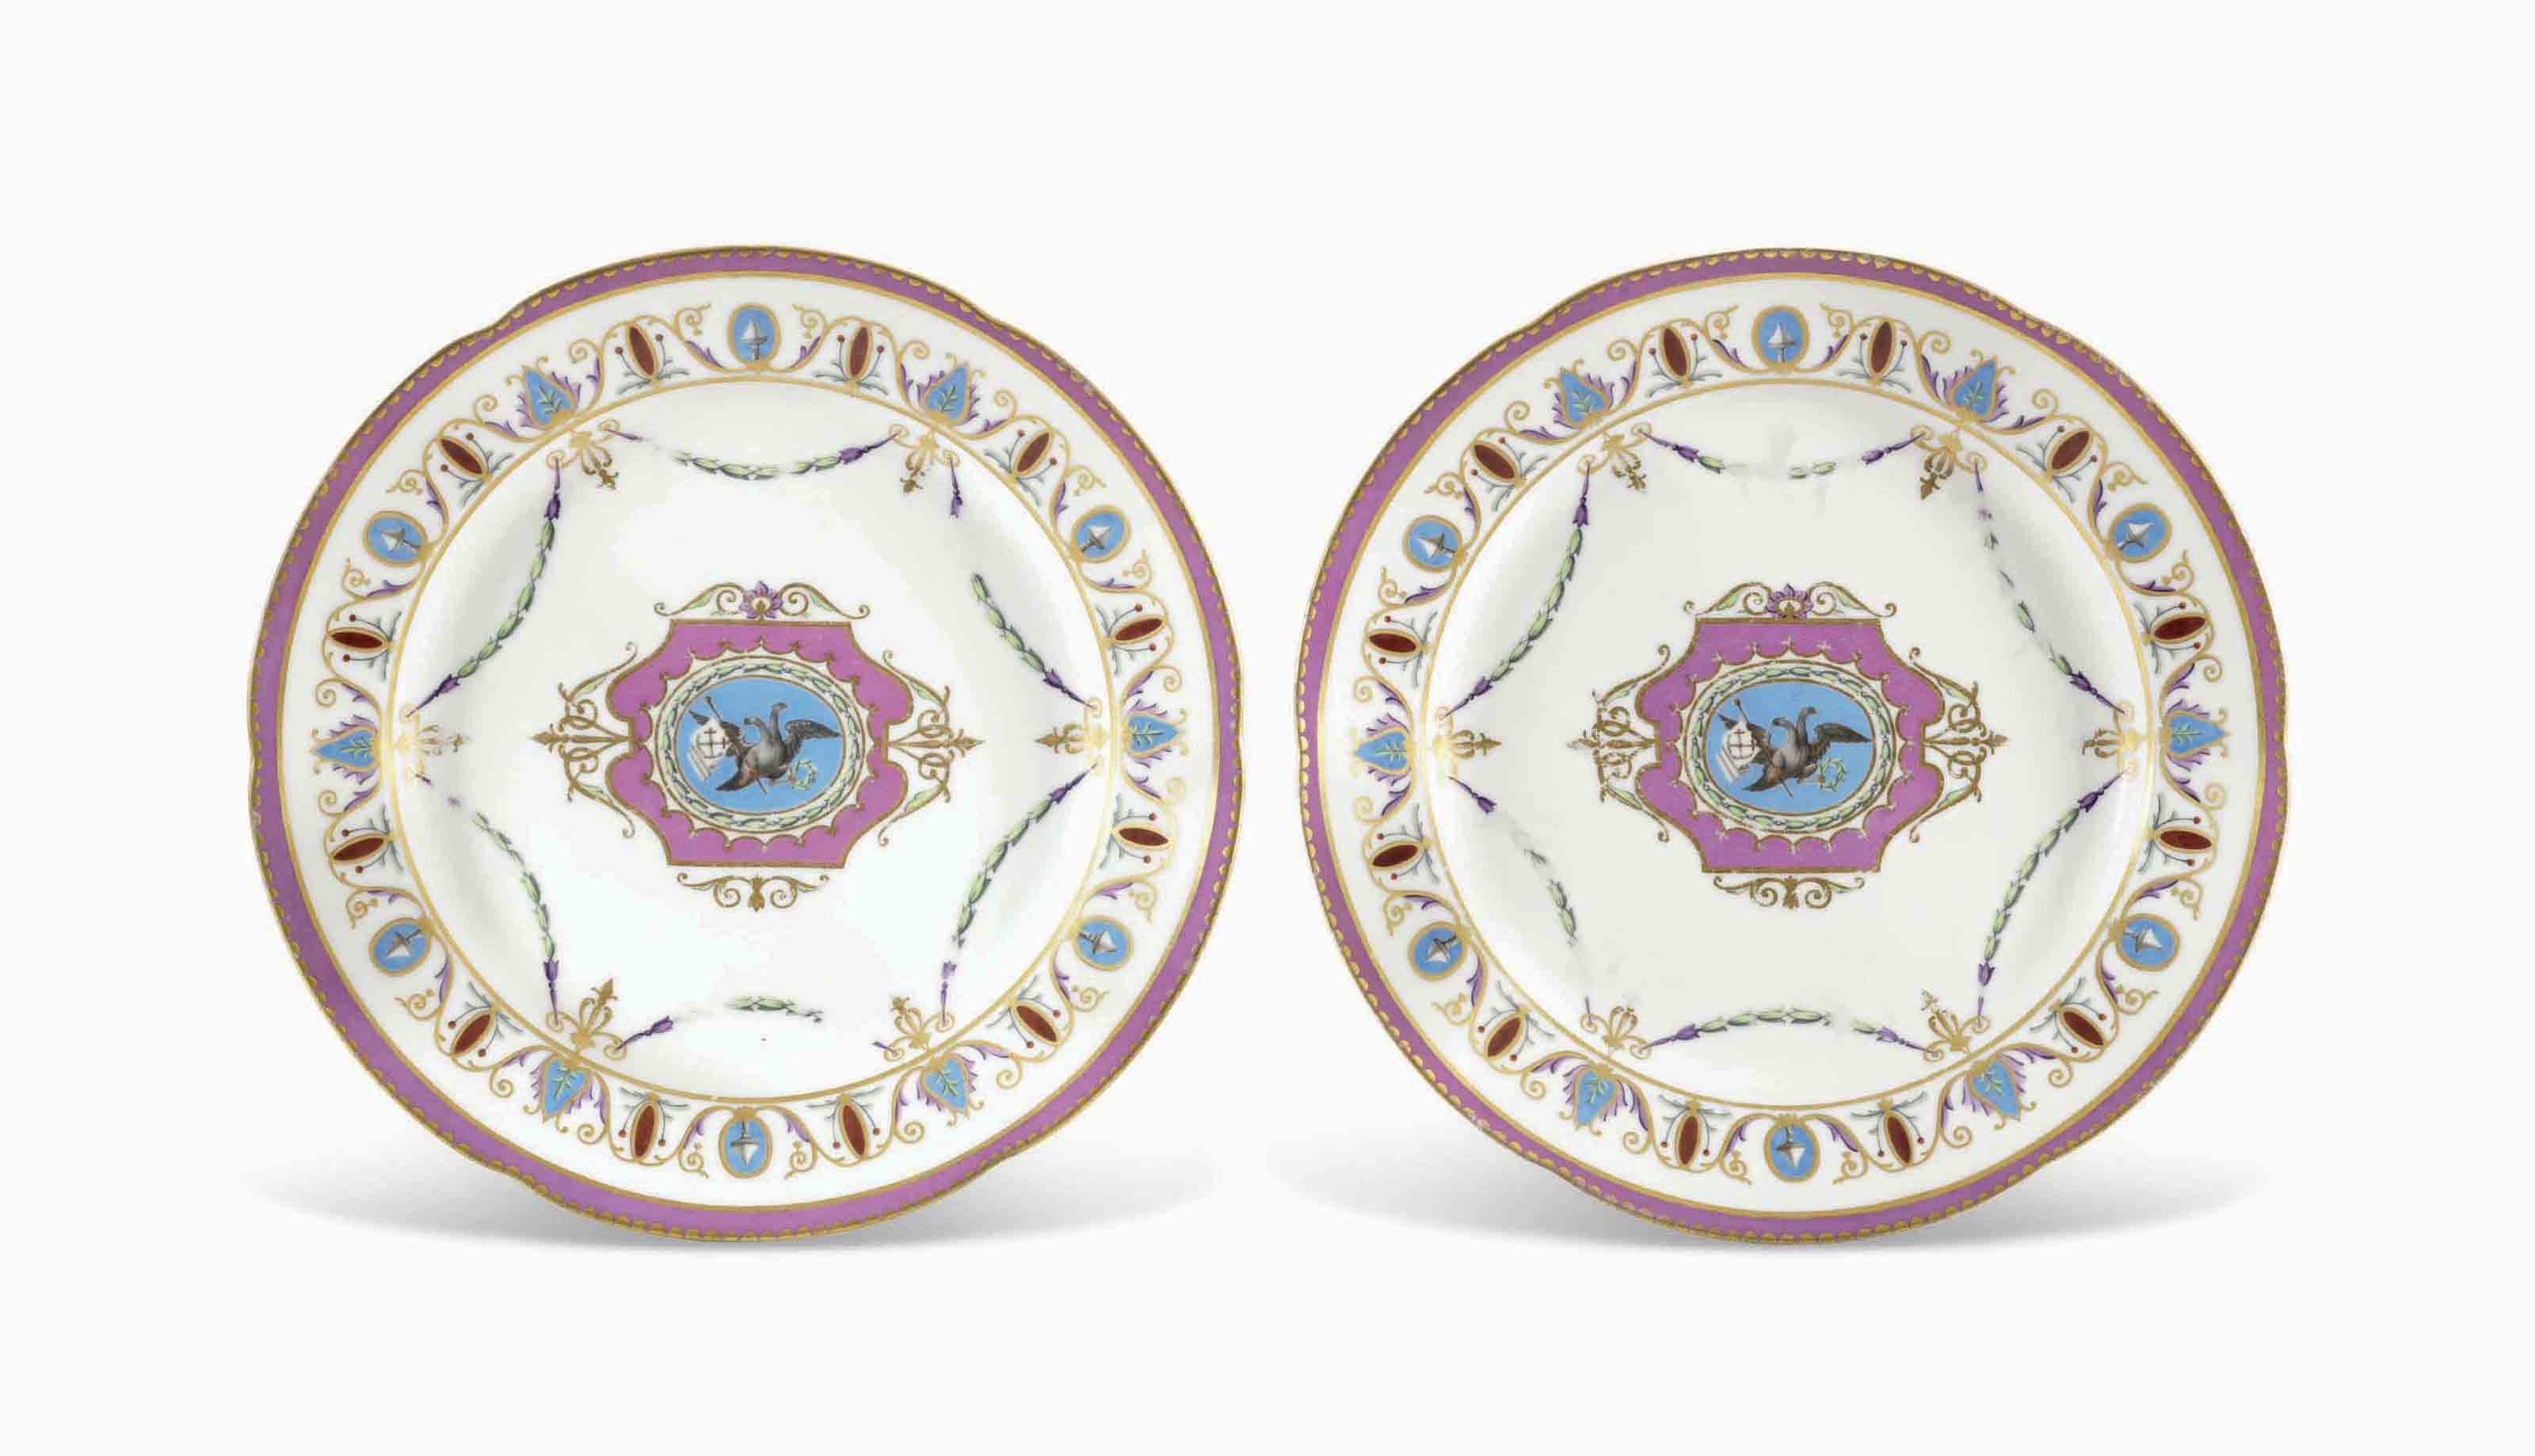 Lot 374  sc 1 st  Christie\u0027s & TWO PORCELAIN PLATES FROM THE YACHT SERVICE | BY THE IMPERIAL ...